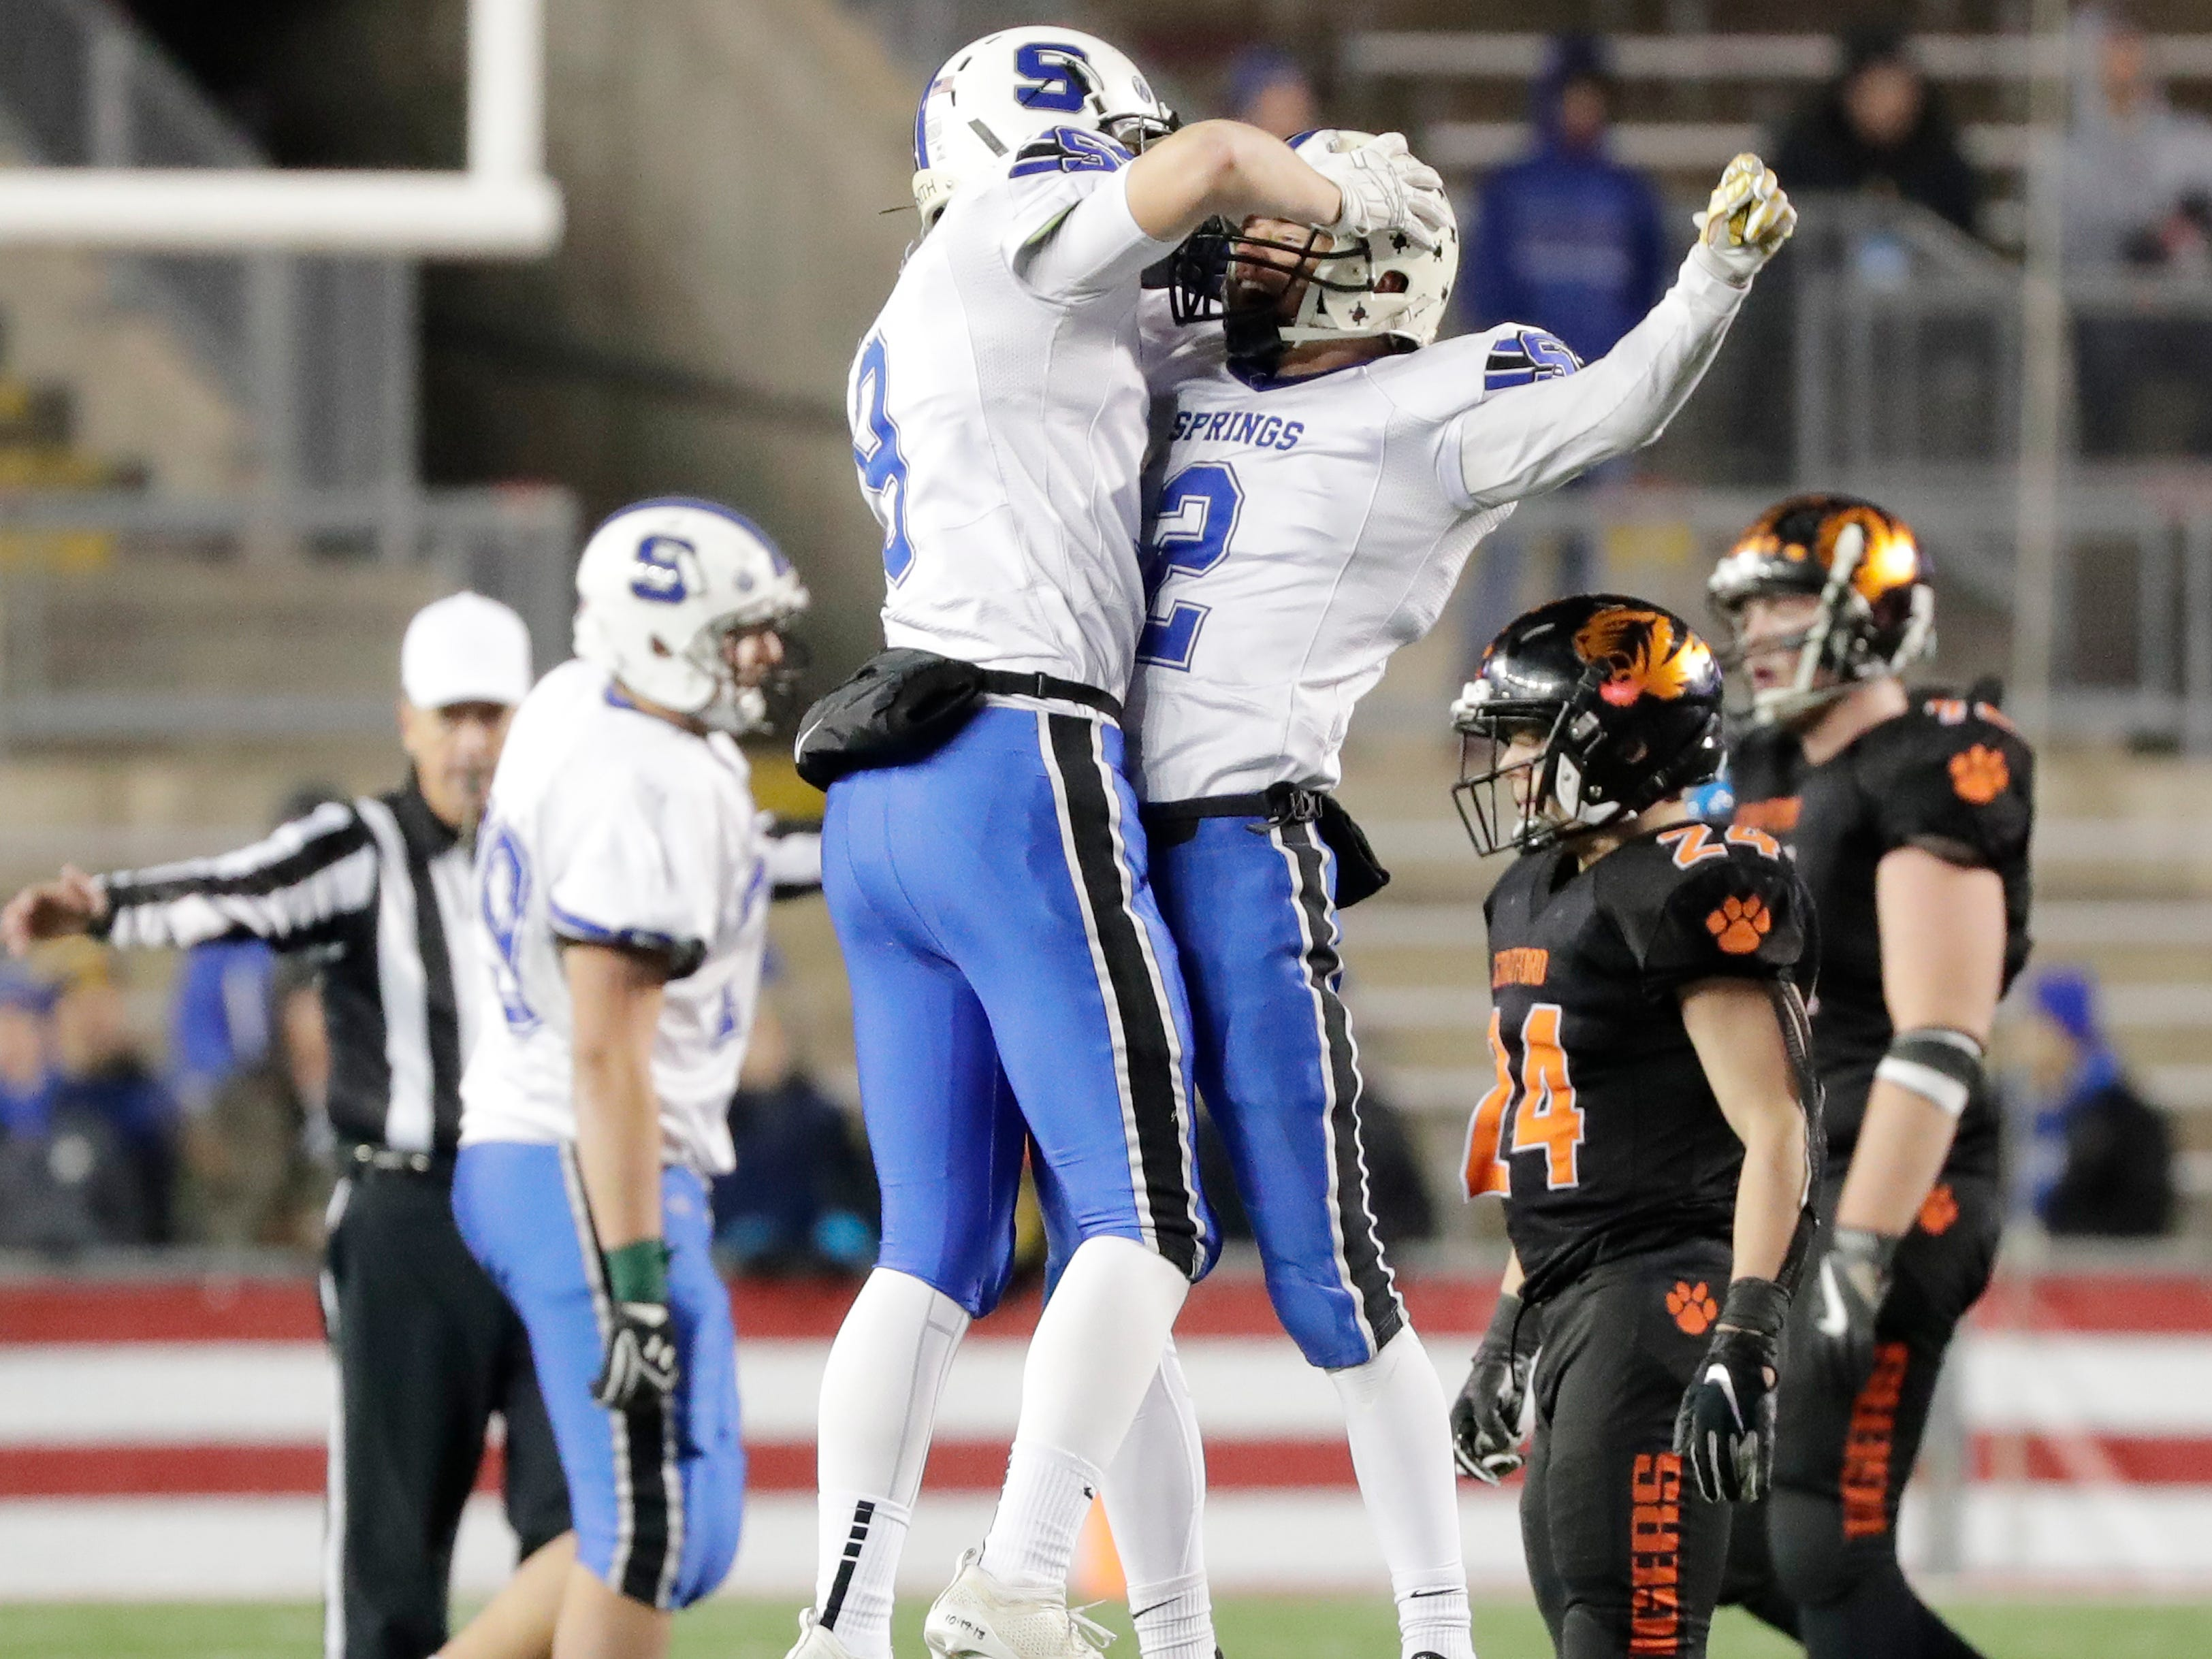 St Mary's Springs Academy's Matthew Moul (2) and Cade Christensen (9) celebrate near the end of the fourth quarter against Stratford in the WIAA Division 5 championship game at Camp Randall Stadium on Thursday, November 15, 2018 in Madison, Wis.